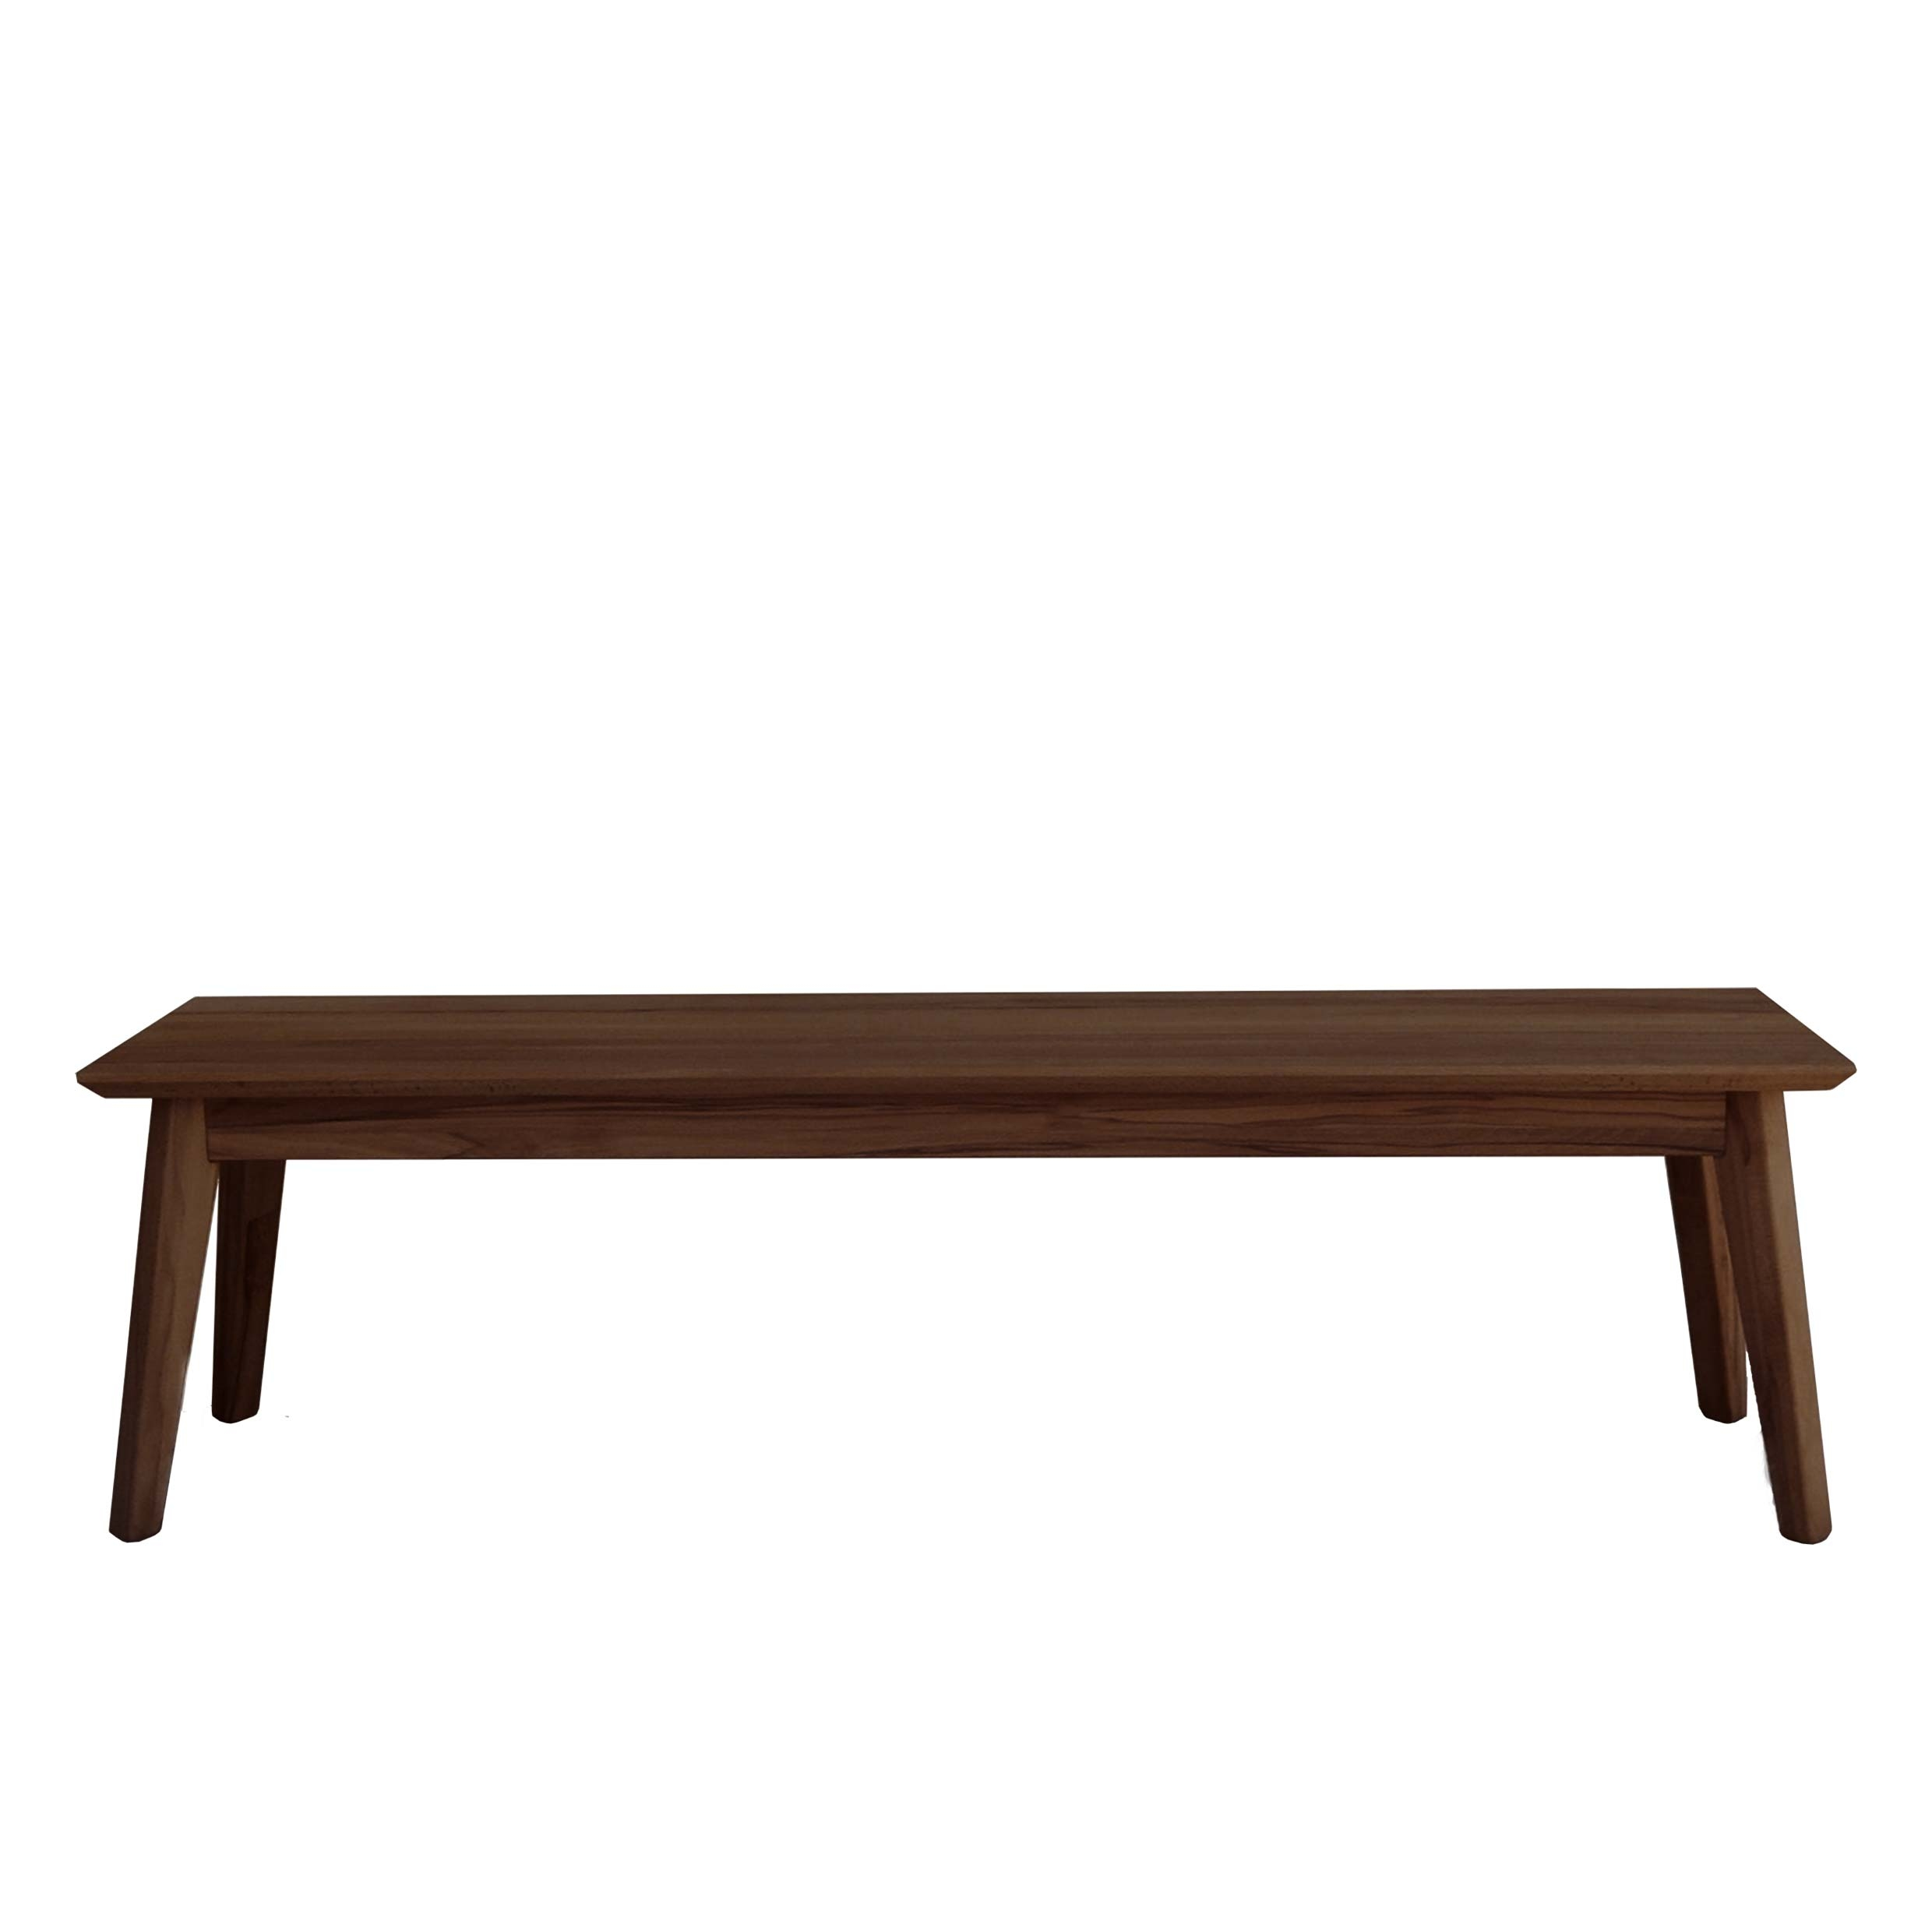 Bianco walnut bench